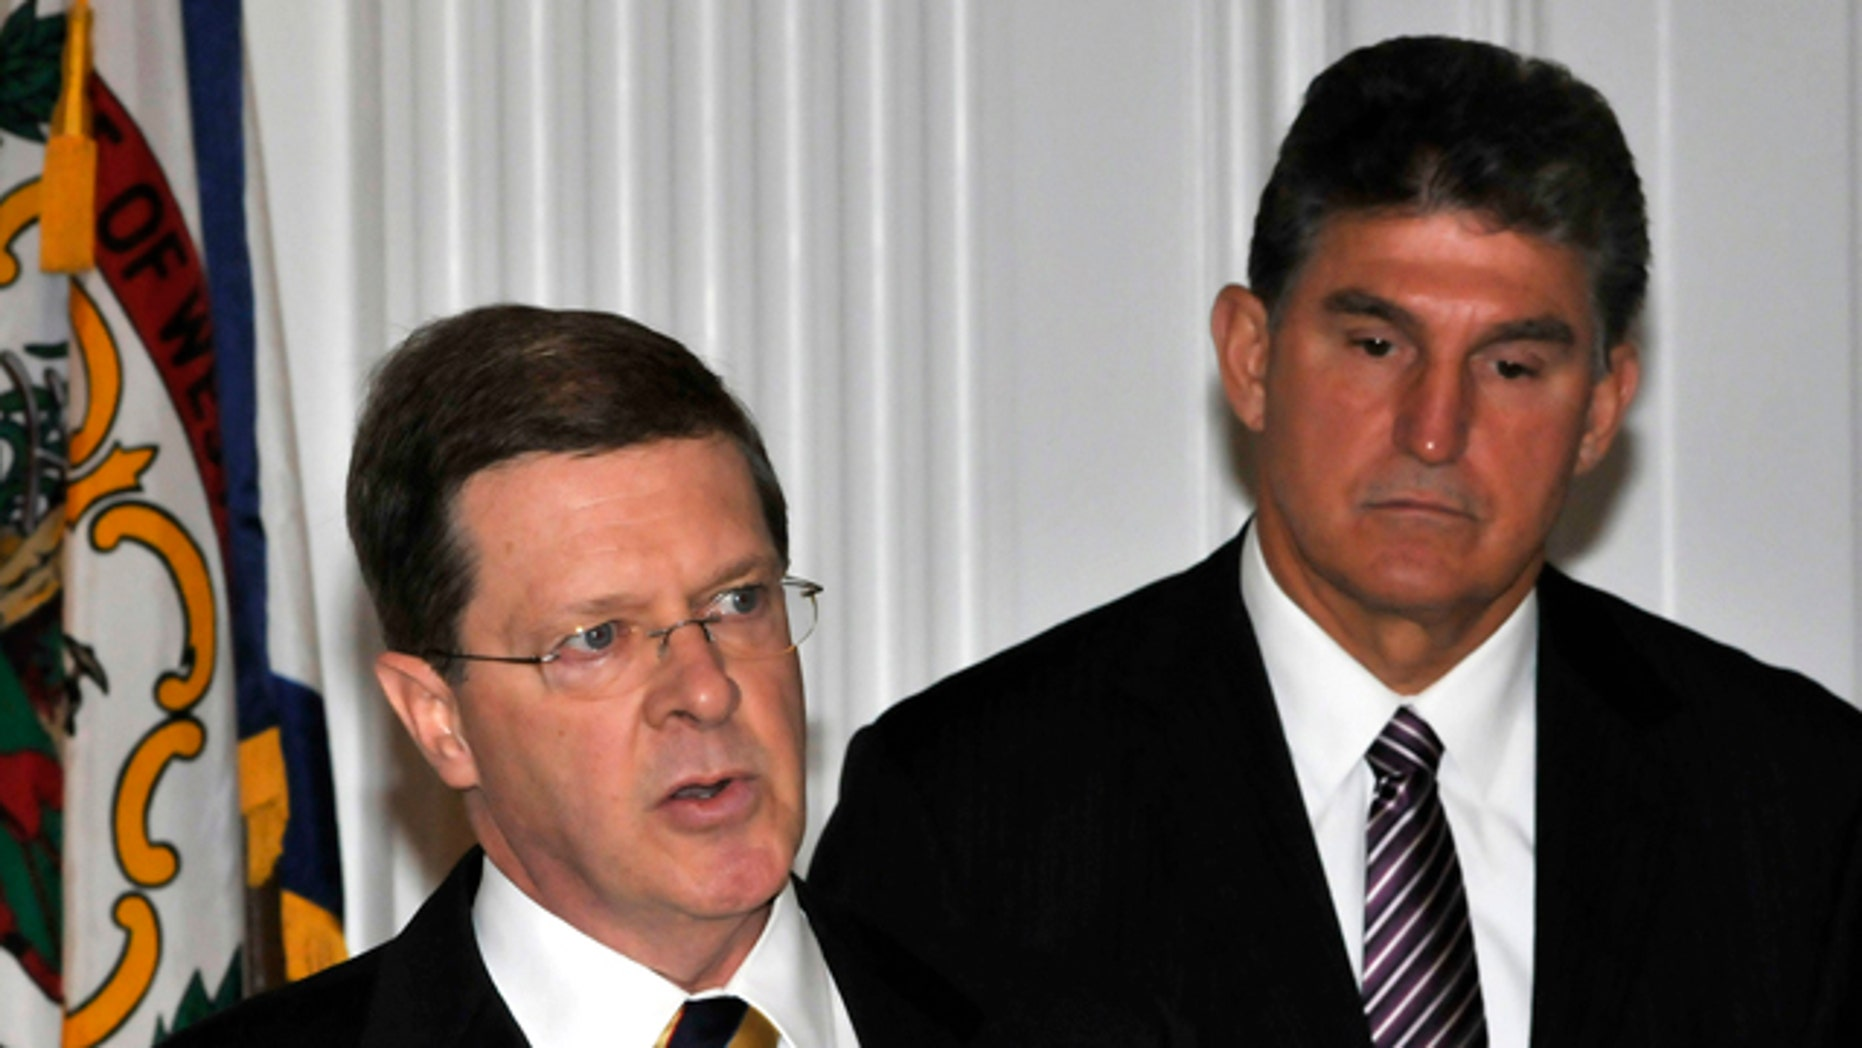 Oct. 6, 2010: Ben Bailey, hired by the state of West Virginia to file a lawsuit against the Obama administration's efforts to curb mountaintop removal coal mining, speaks as W.Va. Gov. Joe Manchin, right, listens at the Capitol in Charleston, W.Va.